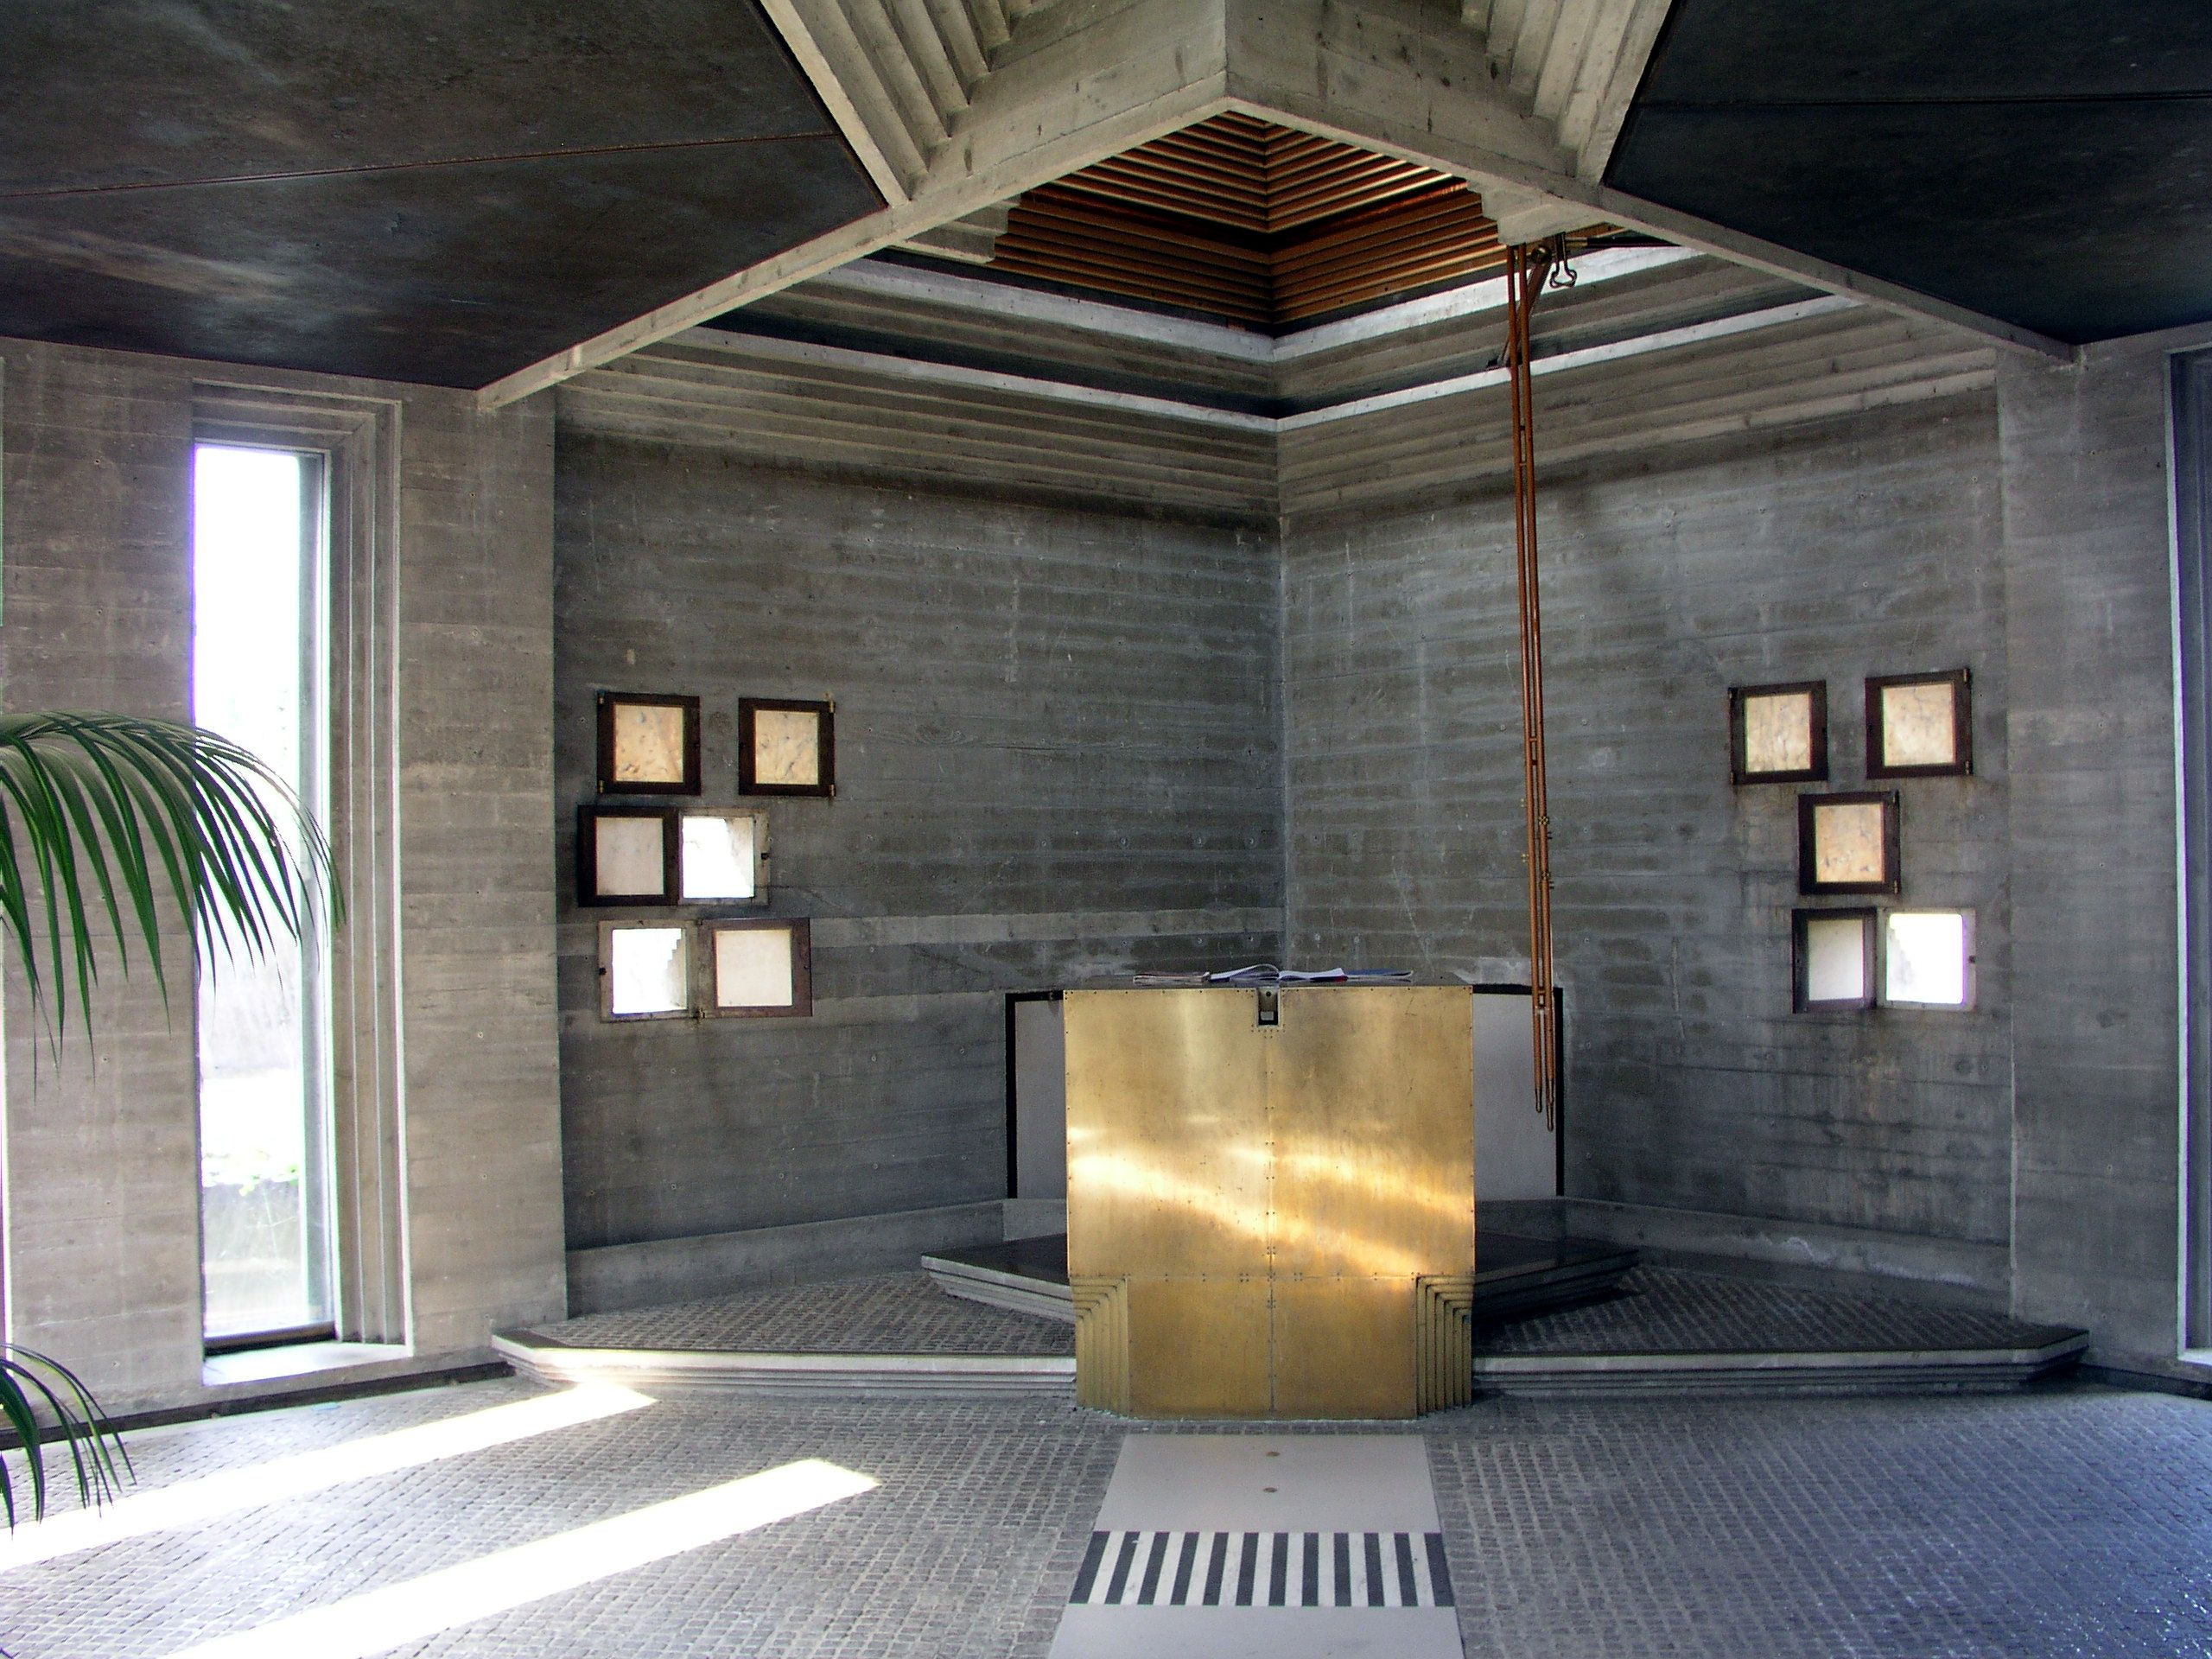 Carlo scarpa brion tomb flickr georges braque m mar pinterest architecture and architects - Brion design ...